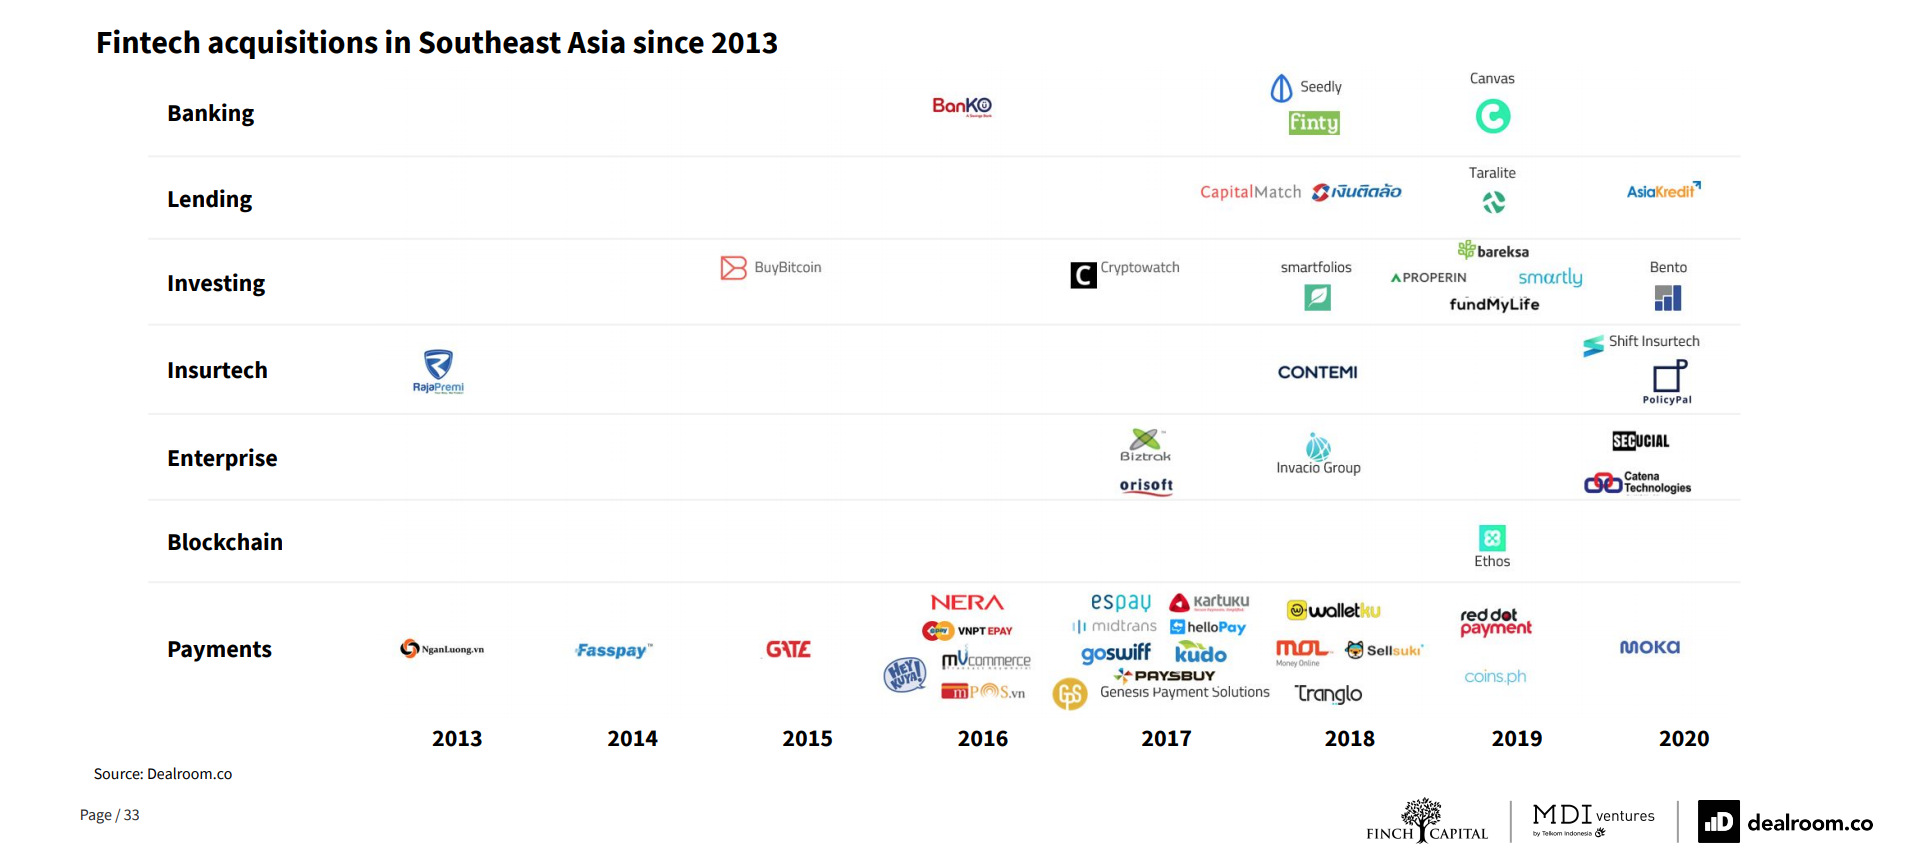 Fintech acquisitions in Southeast Asia since 2013, Source- The Future of Fintech in Southeast Asia, Dealroom, Finch Capital and MDI Ventures, Sept 20